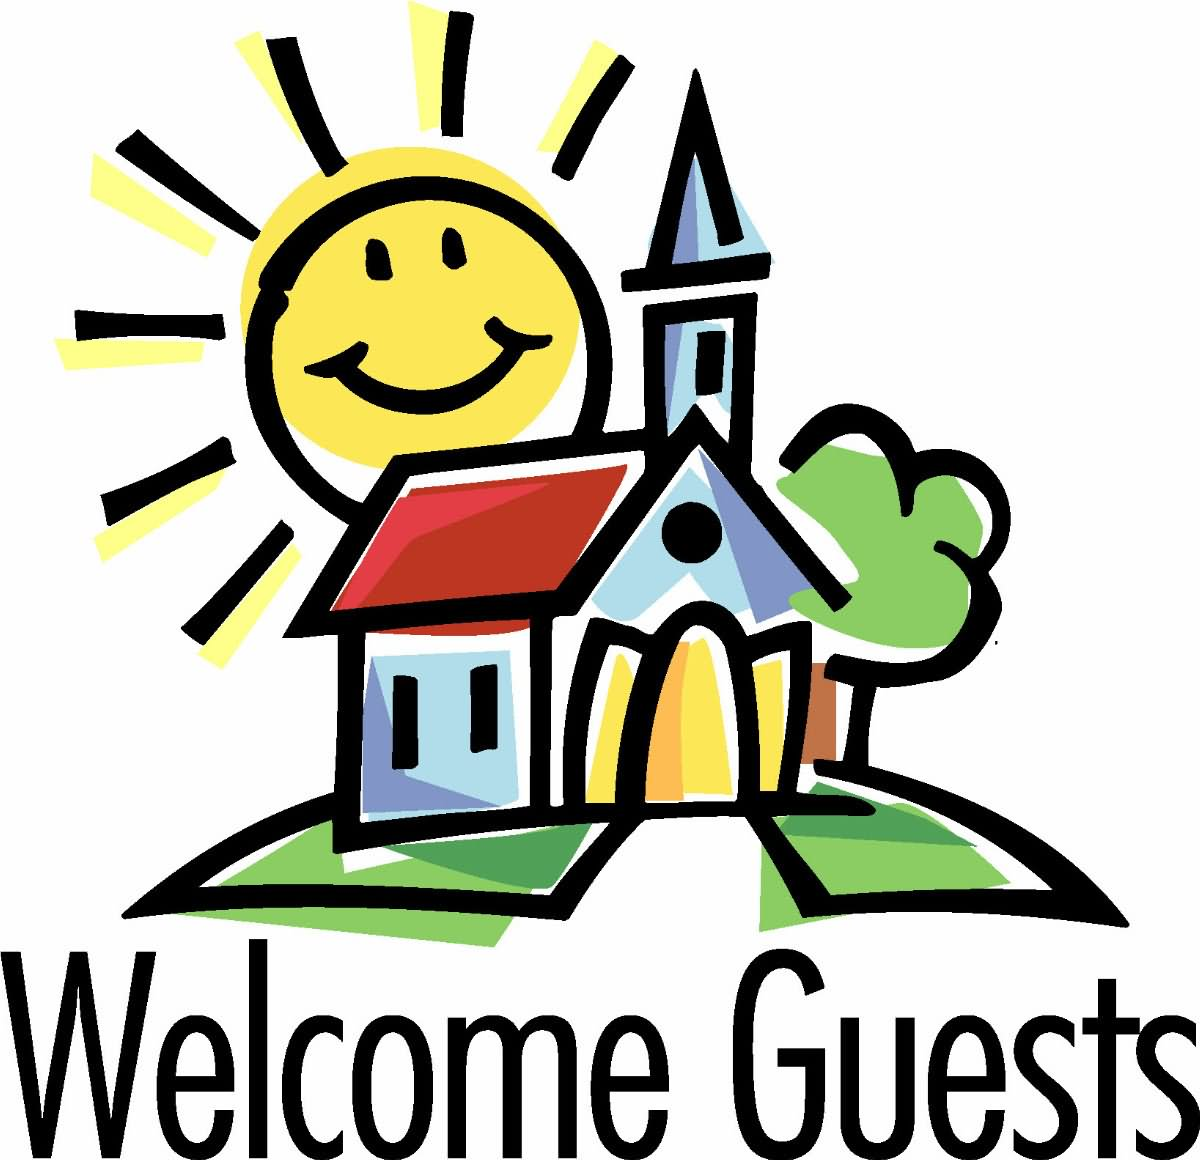 1000+ images about Guest on Pinterest.